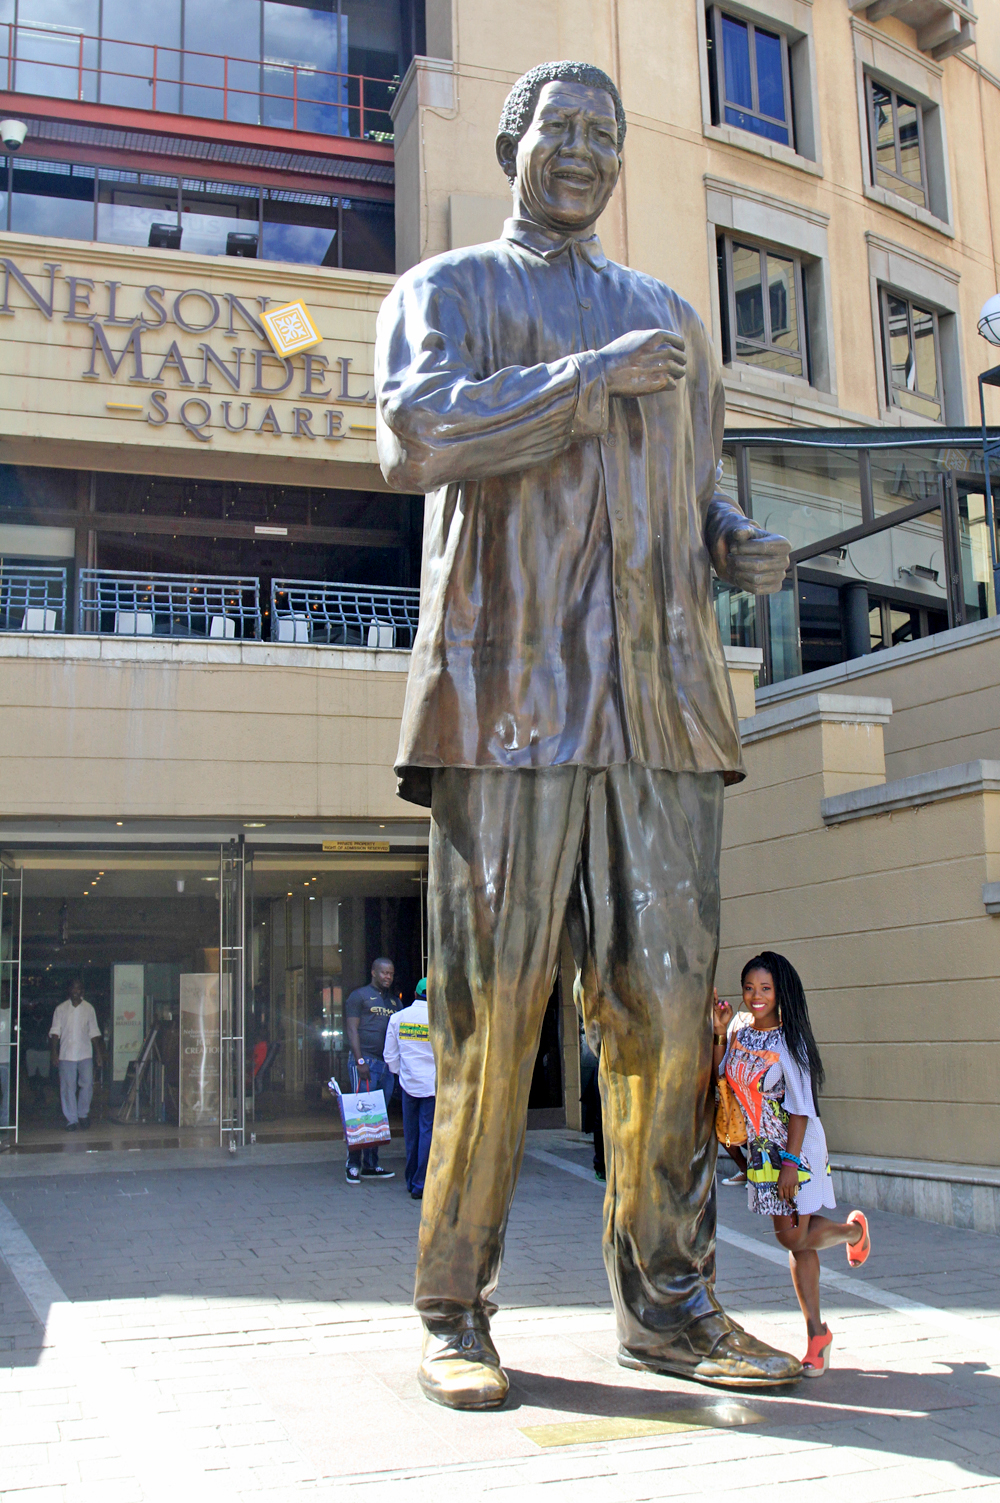 Visiting Nelson Mandela Square in Johannesburg, South Africa